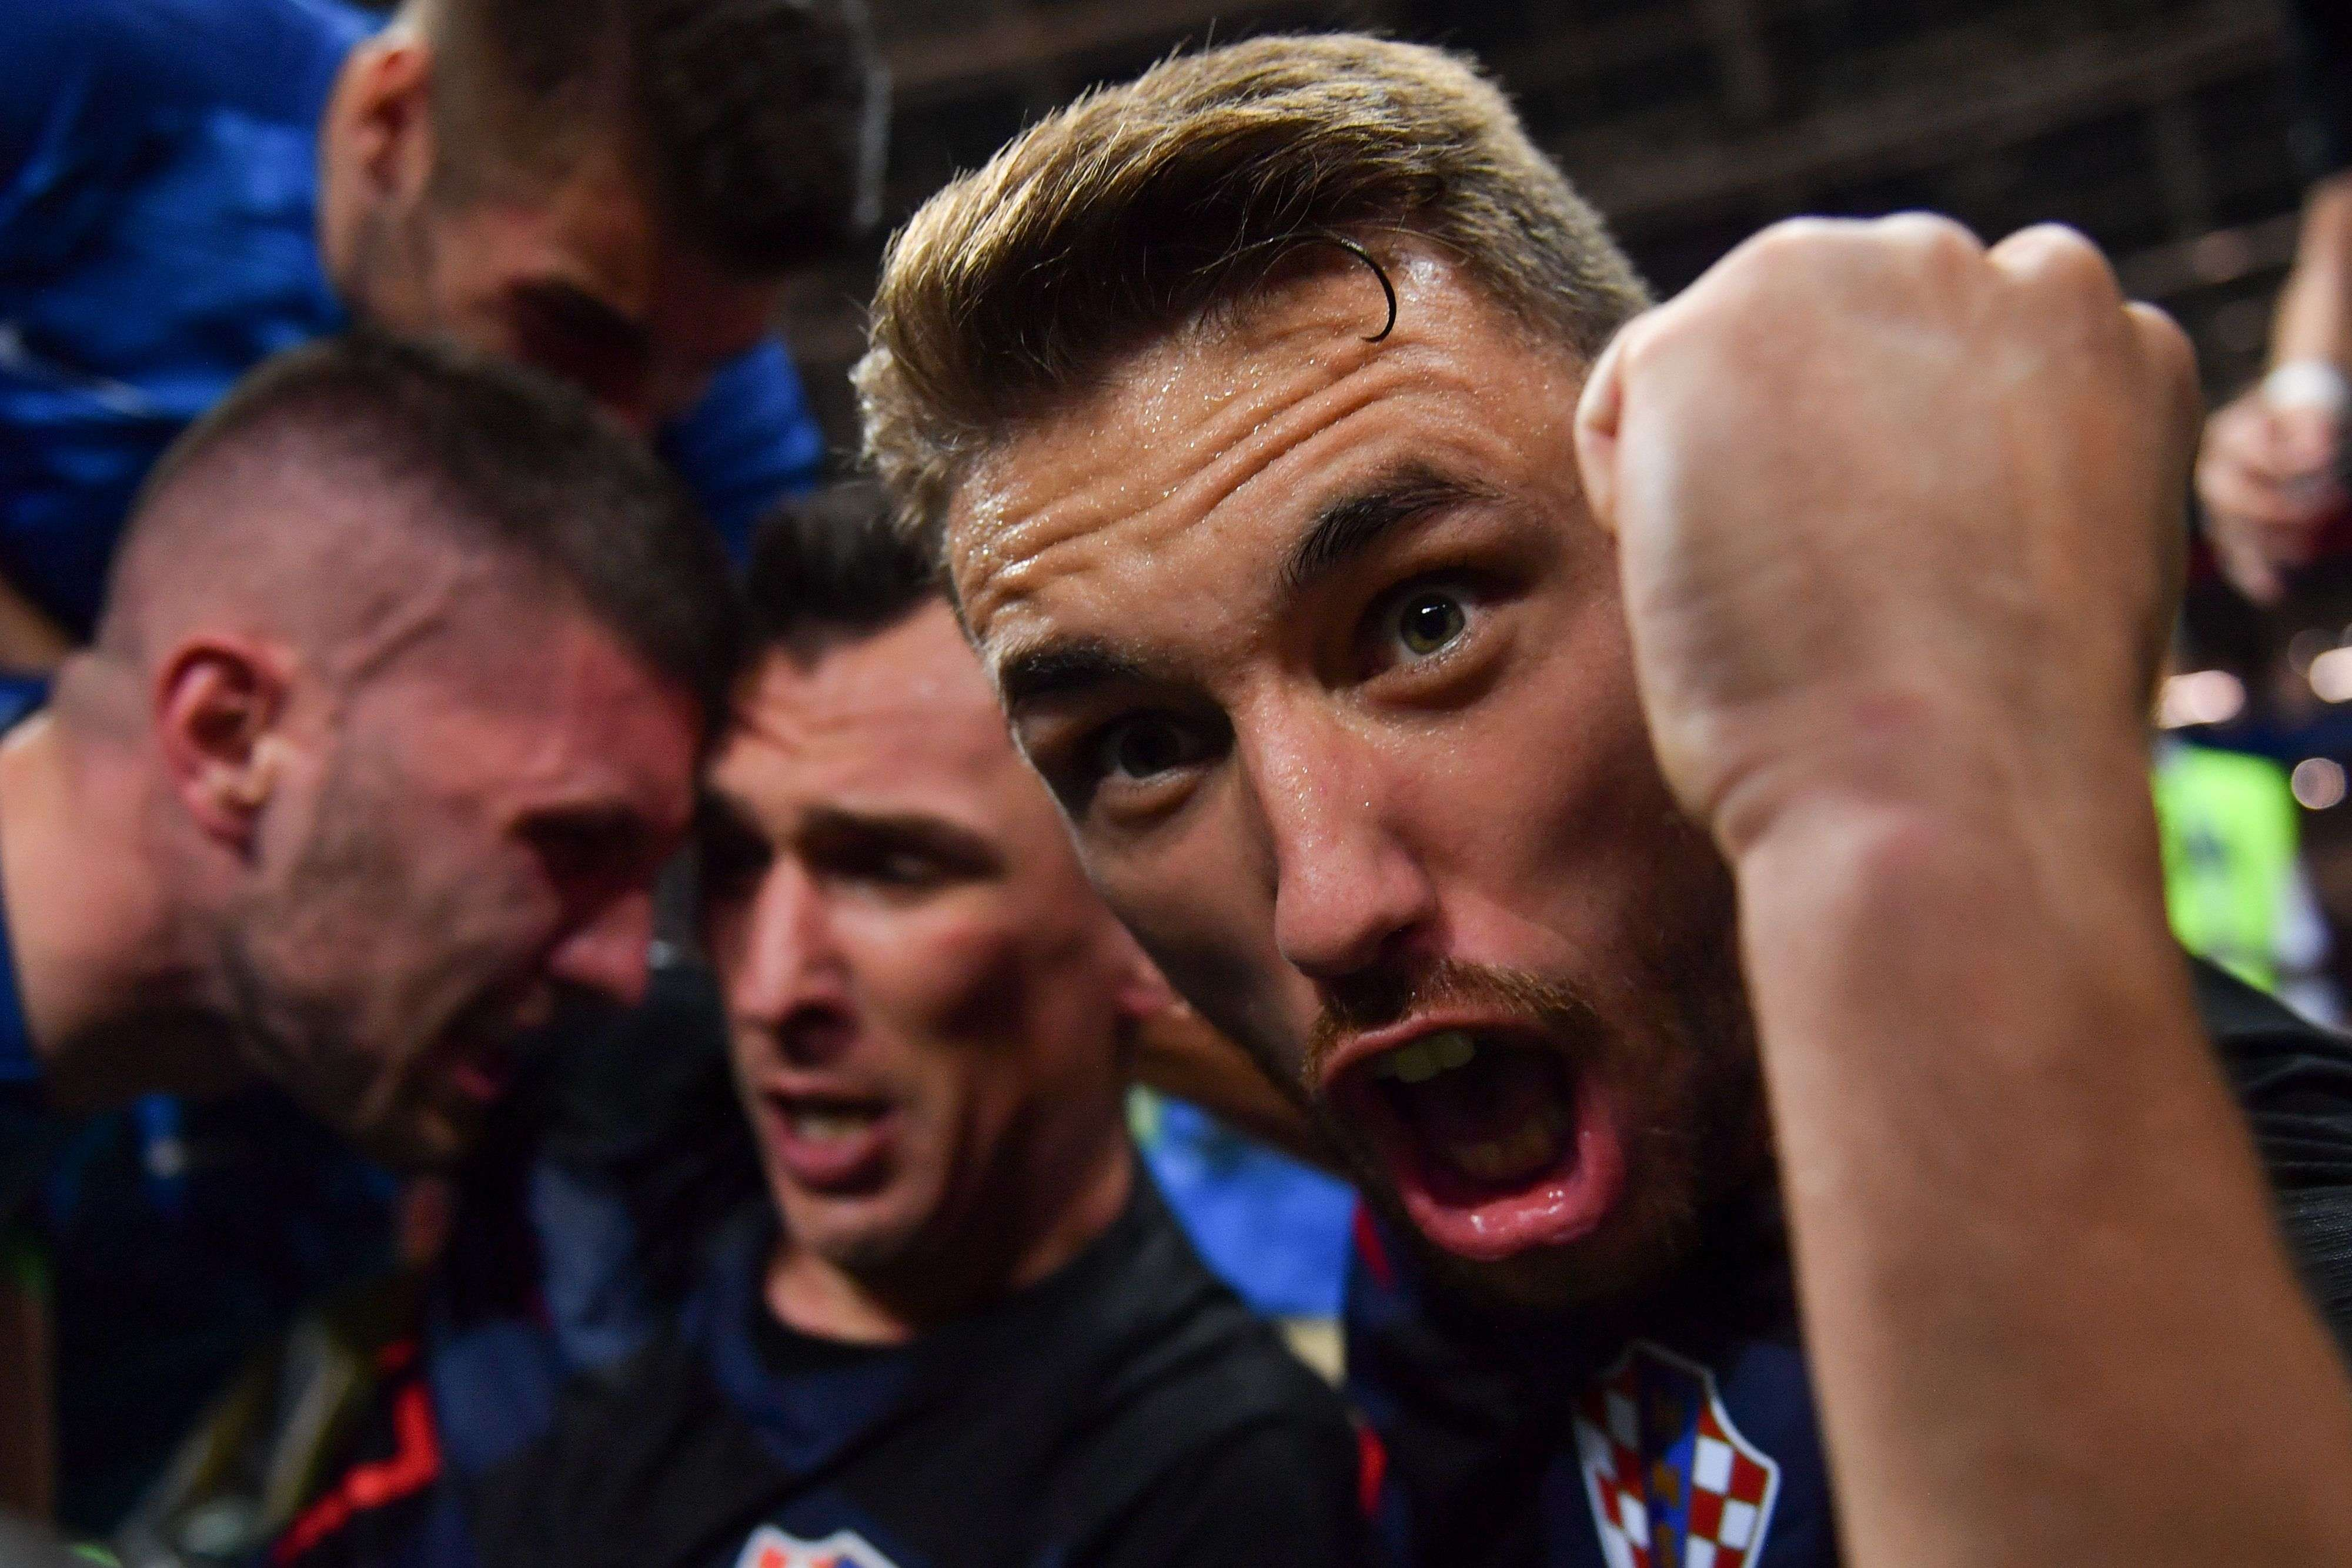 TOPSHOT - Croatia's defender Josip Pivaric (R) celebrates with teammates after Croatia's forward Mario Mandzukic (C) scored their second goal during the Russia 2018 World Cup semi-final football match between Croatia and England at the Luzhniki Stadium in Moscow on July 11, 2018. RESTRICTED TO EDITORIAL USE - NO MOBILE PUSH ALERTS/DOWNLOADS